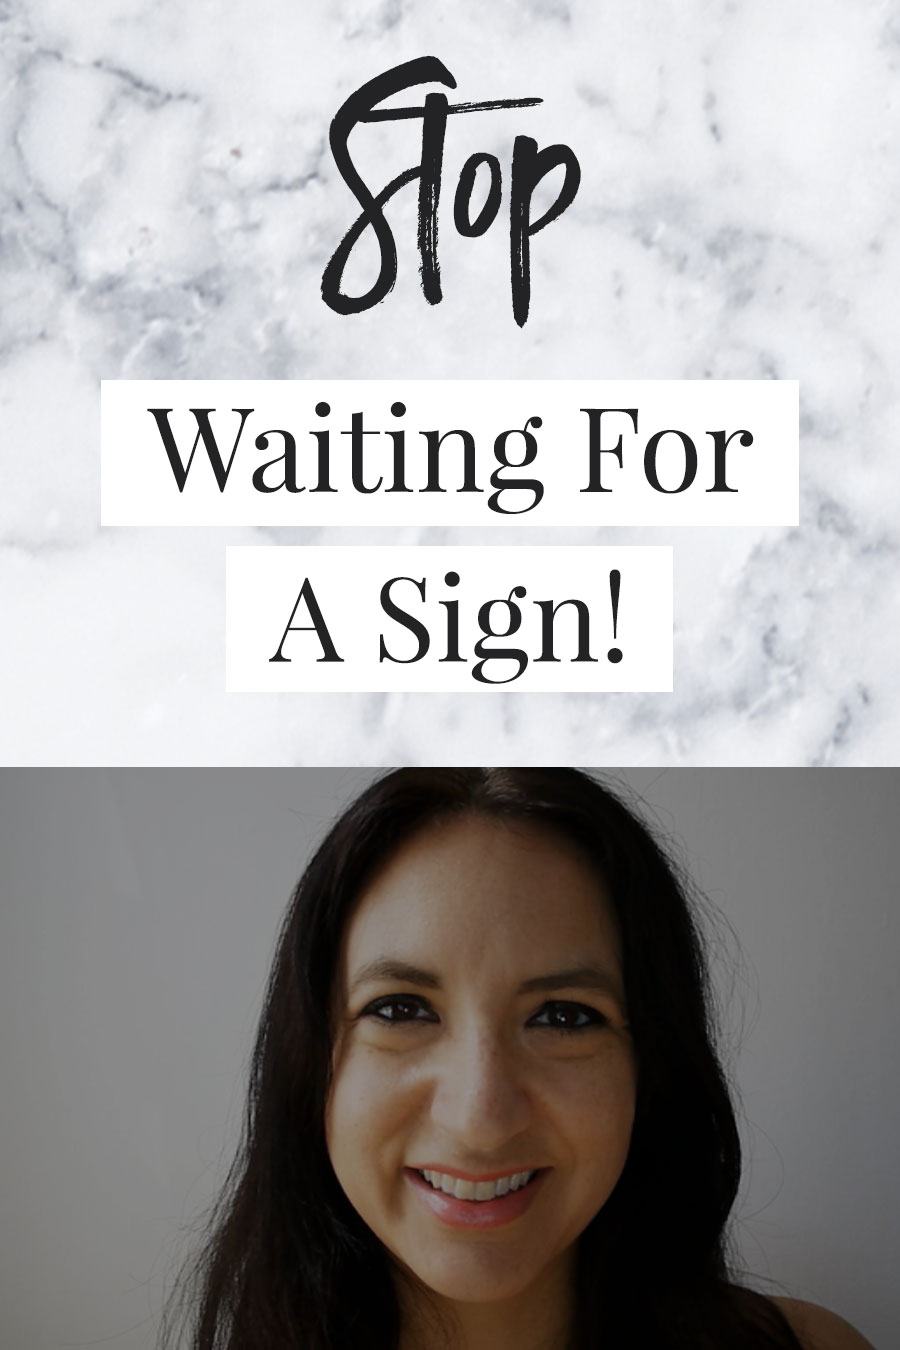 Stop Looking For A Sign!